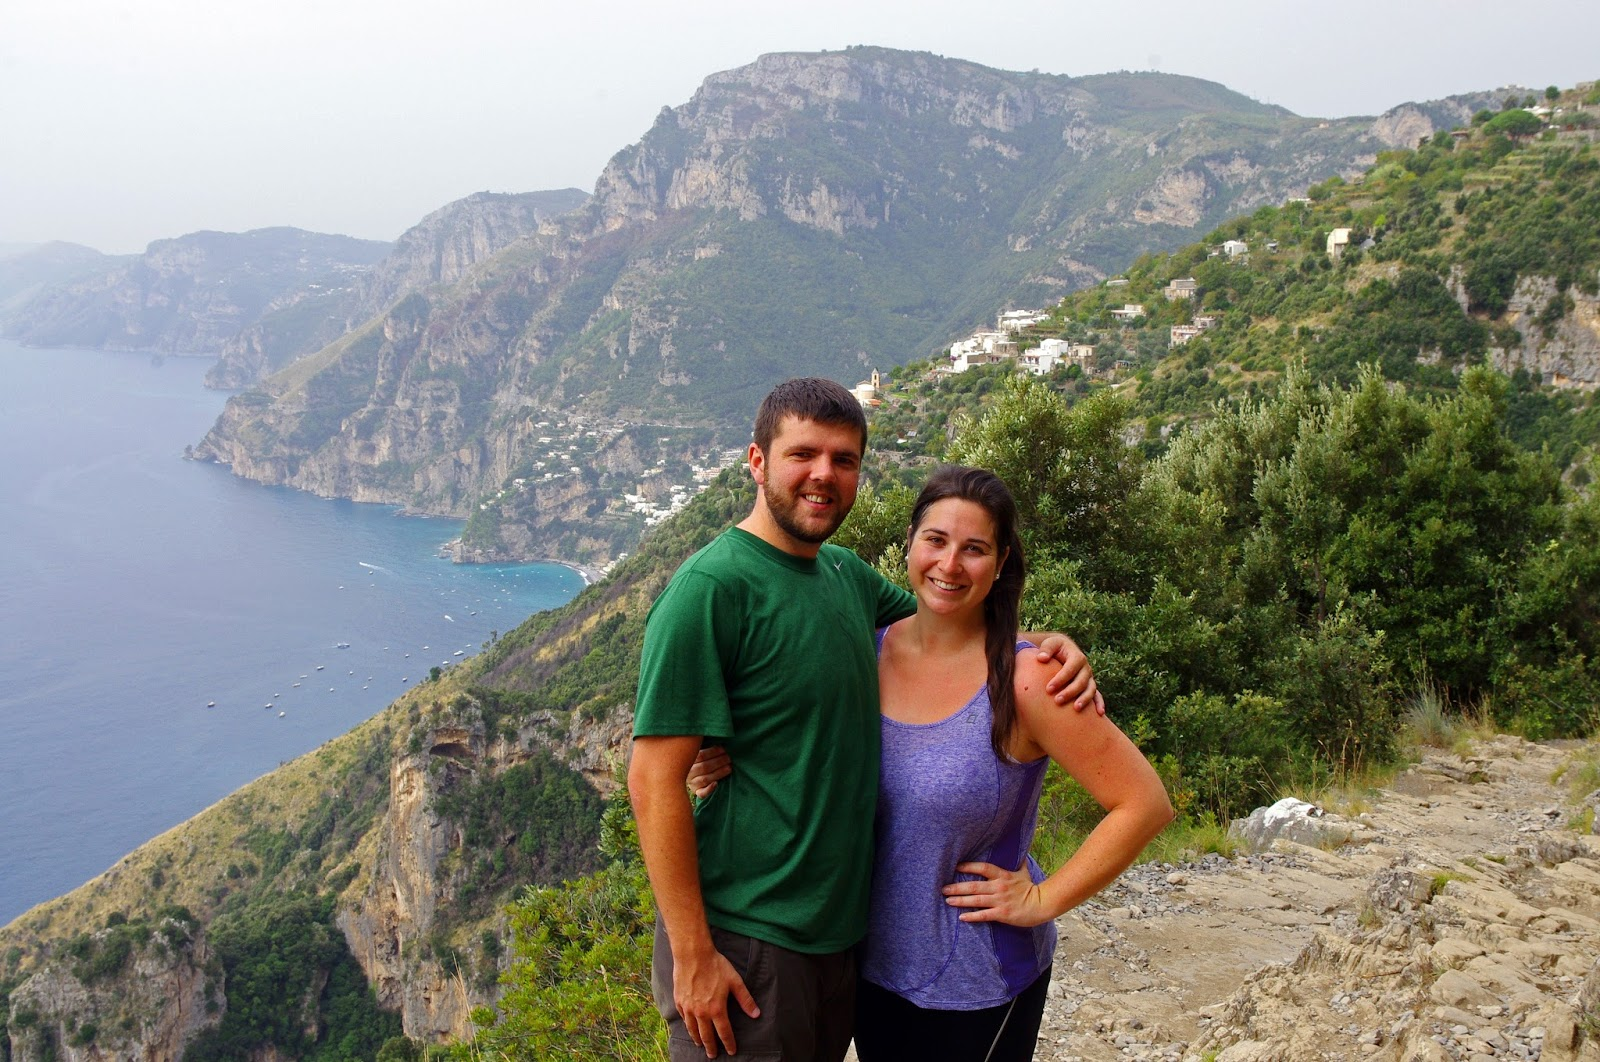 Couple hiking Walk of the Gods in Italy